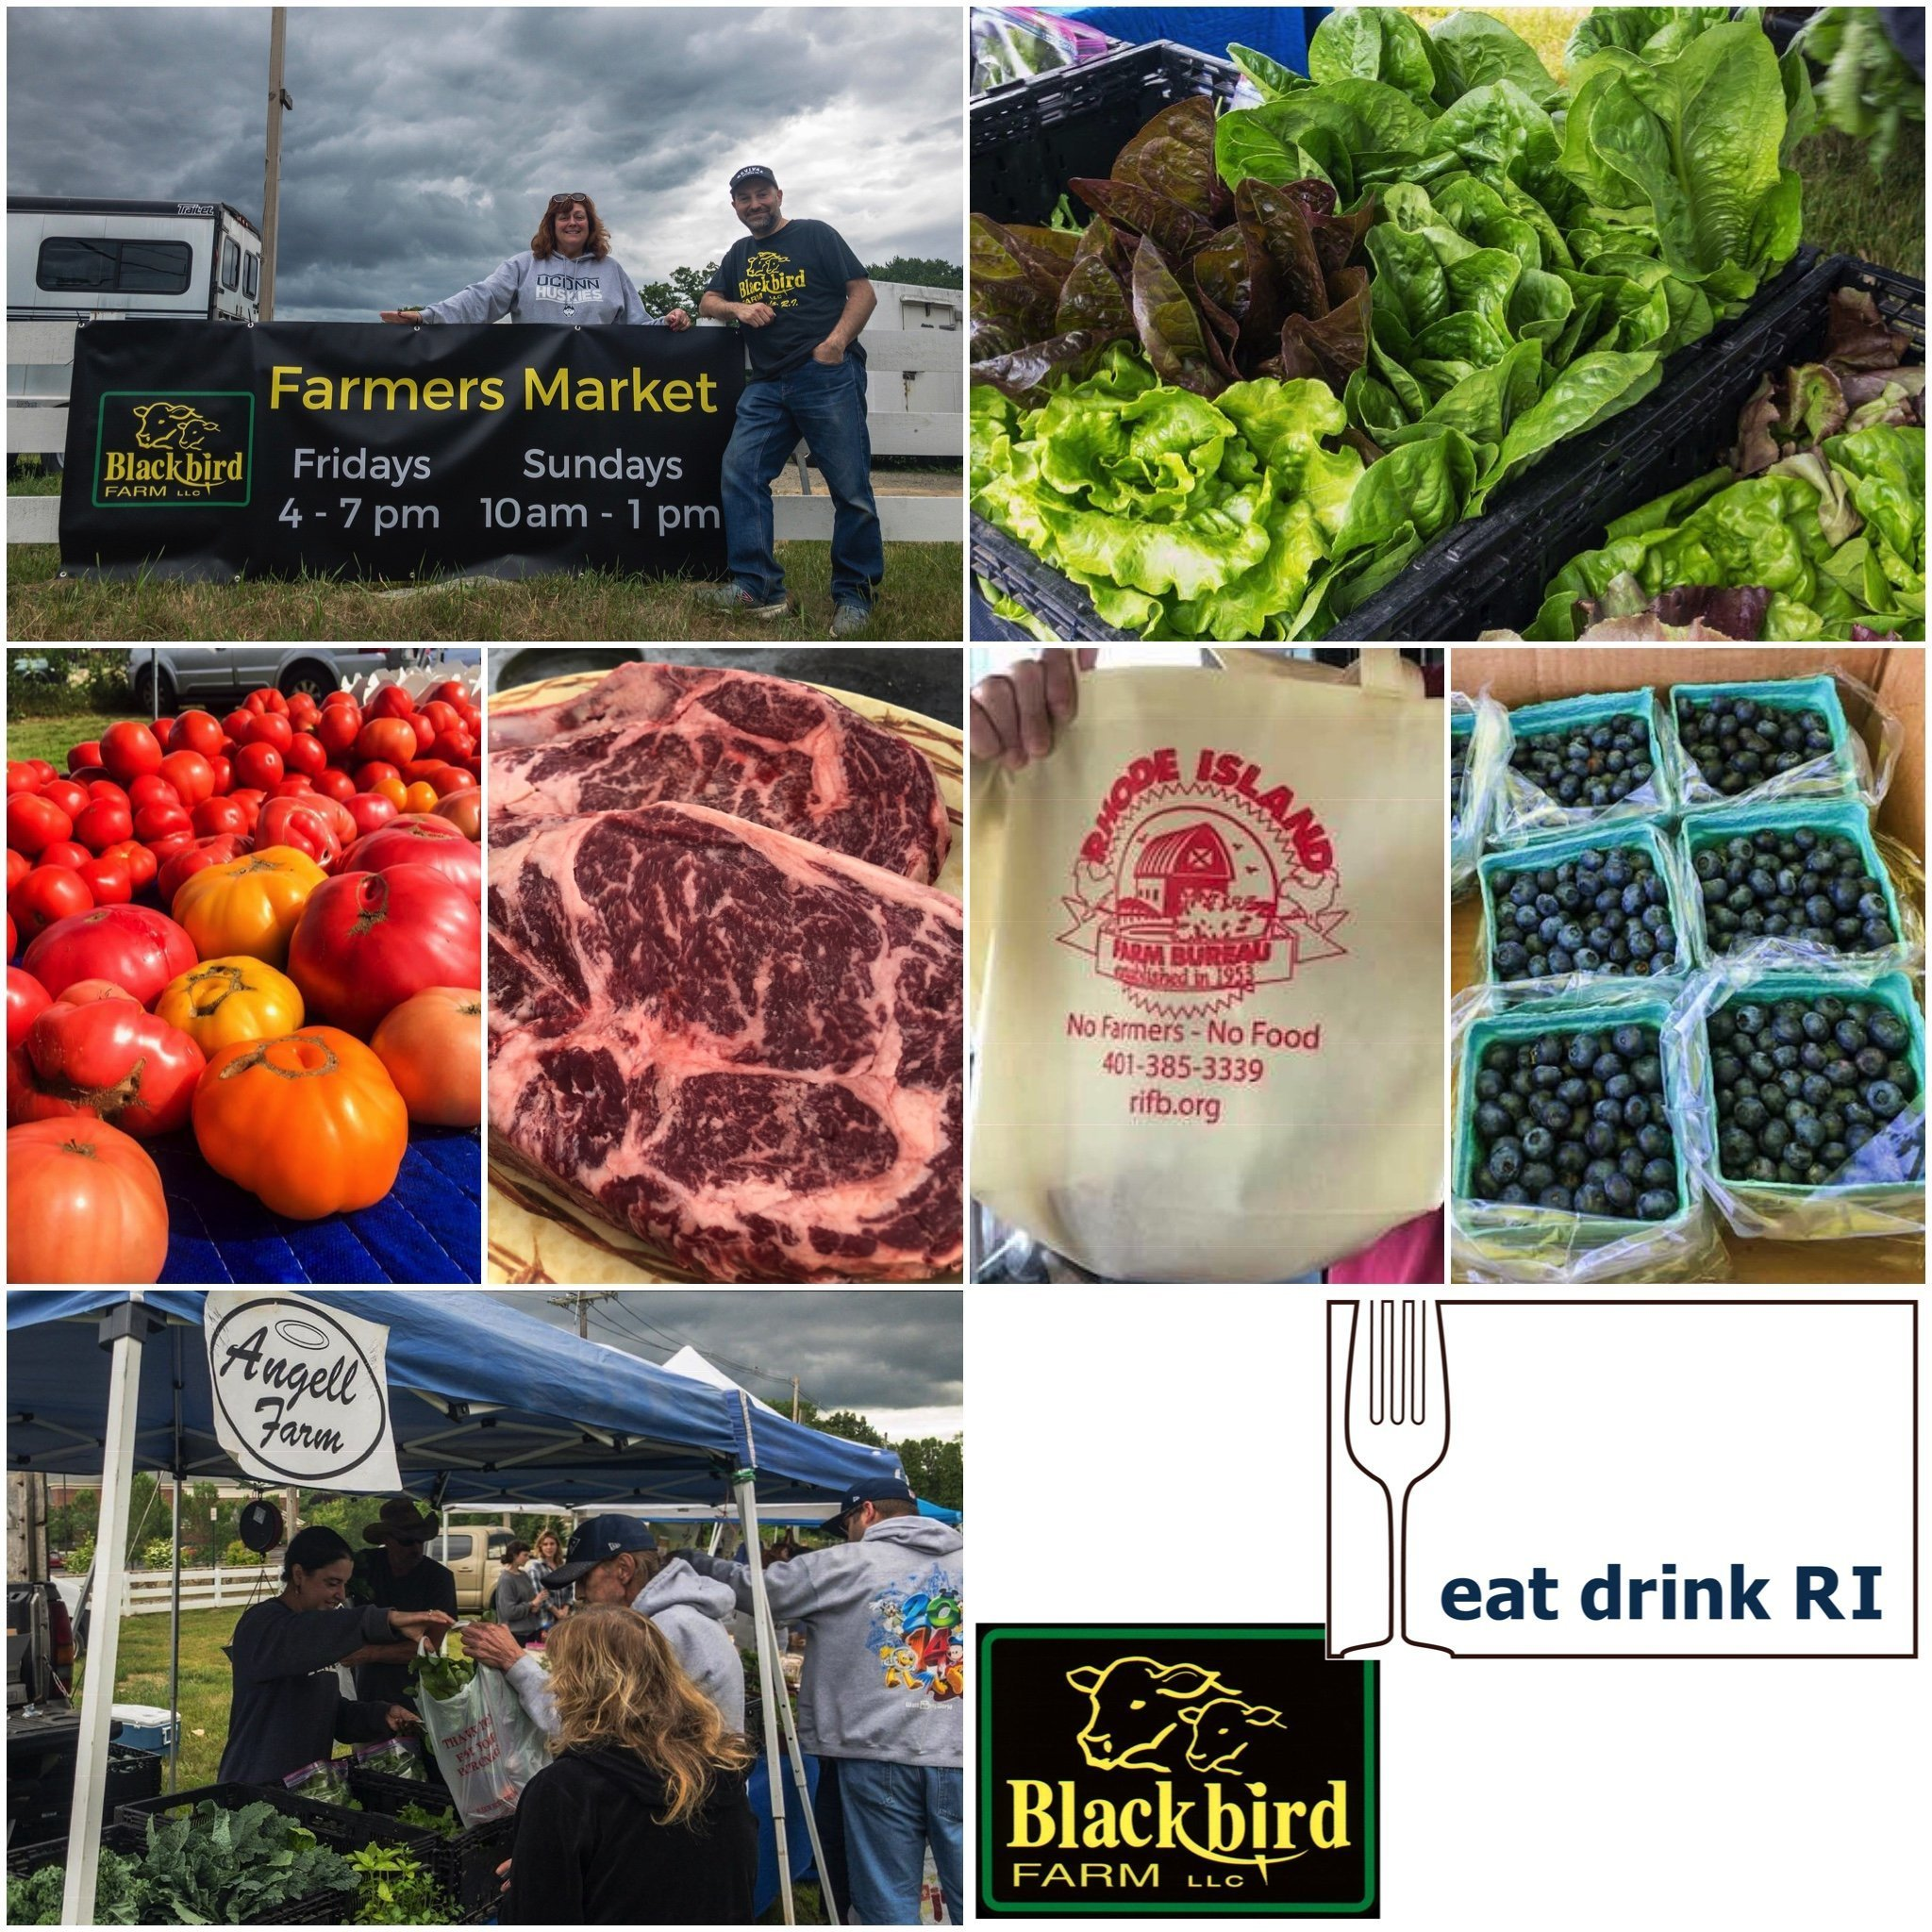 Eat Drink RI Friday Farmers Market at Blackbird Farm